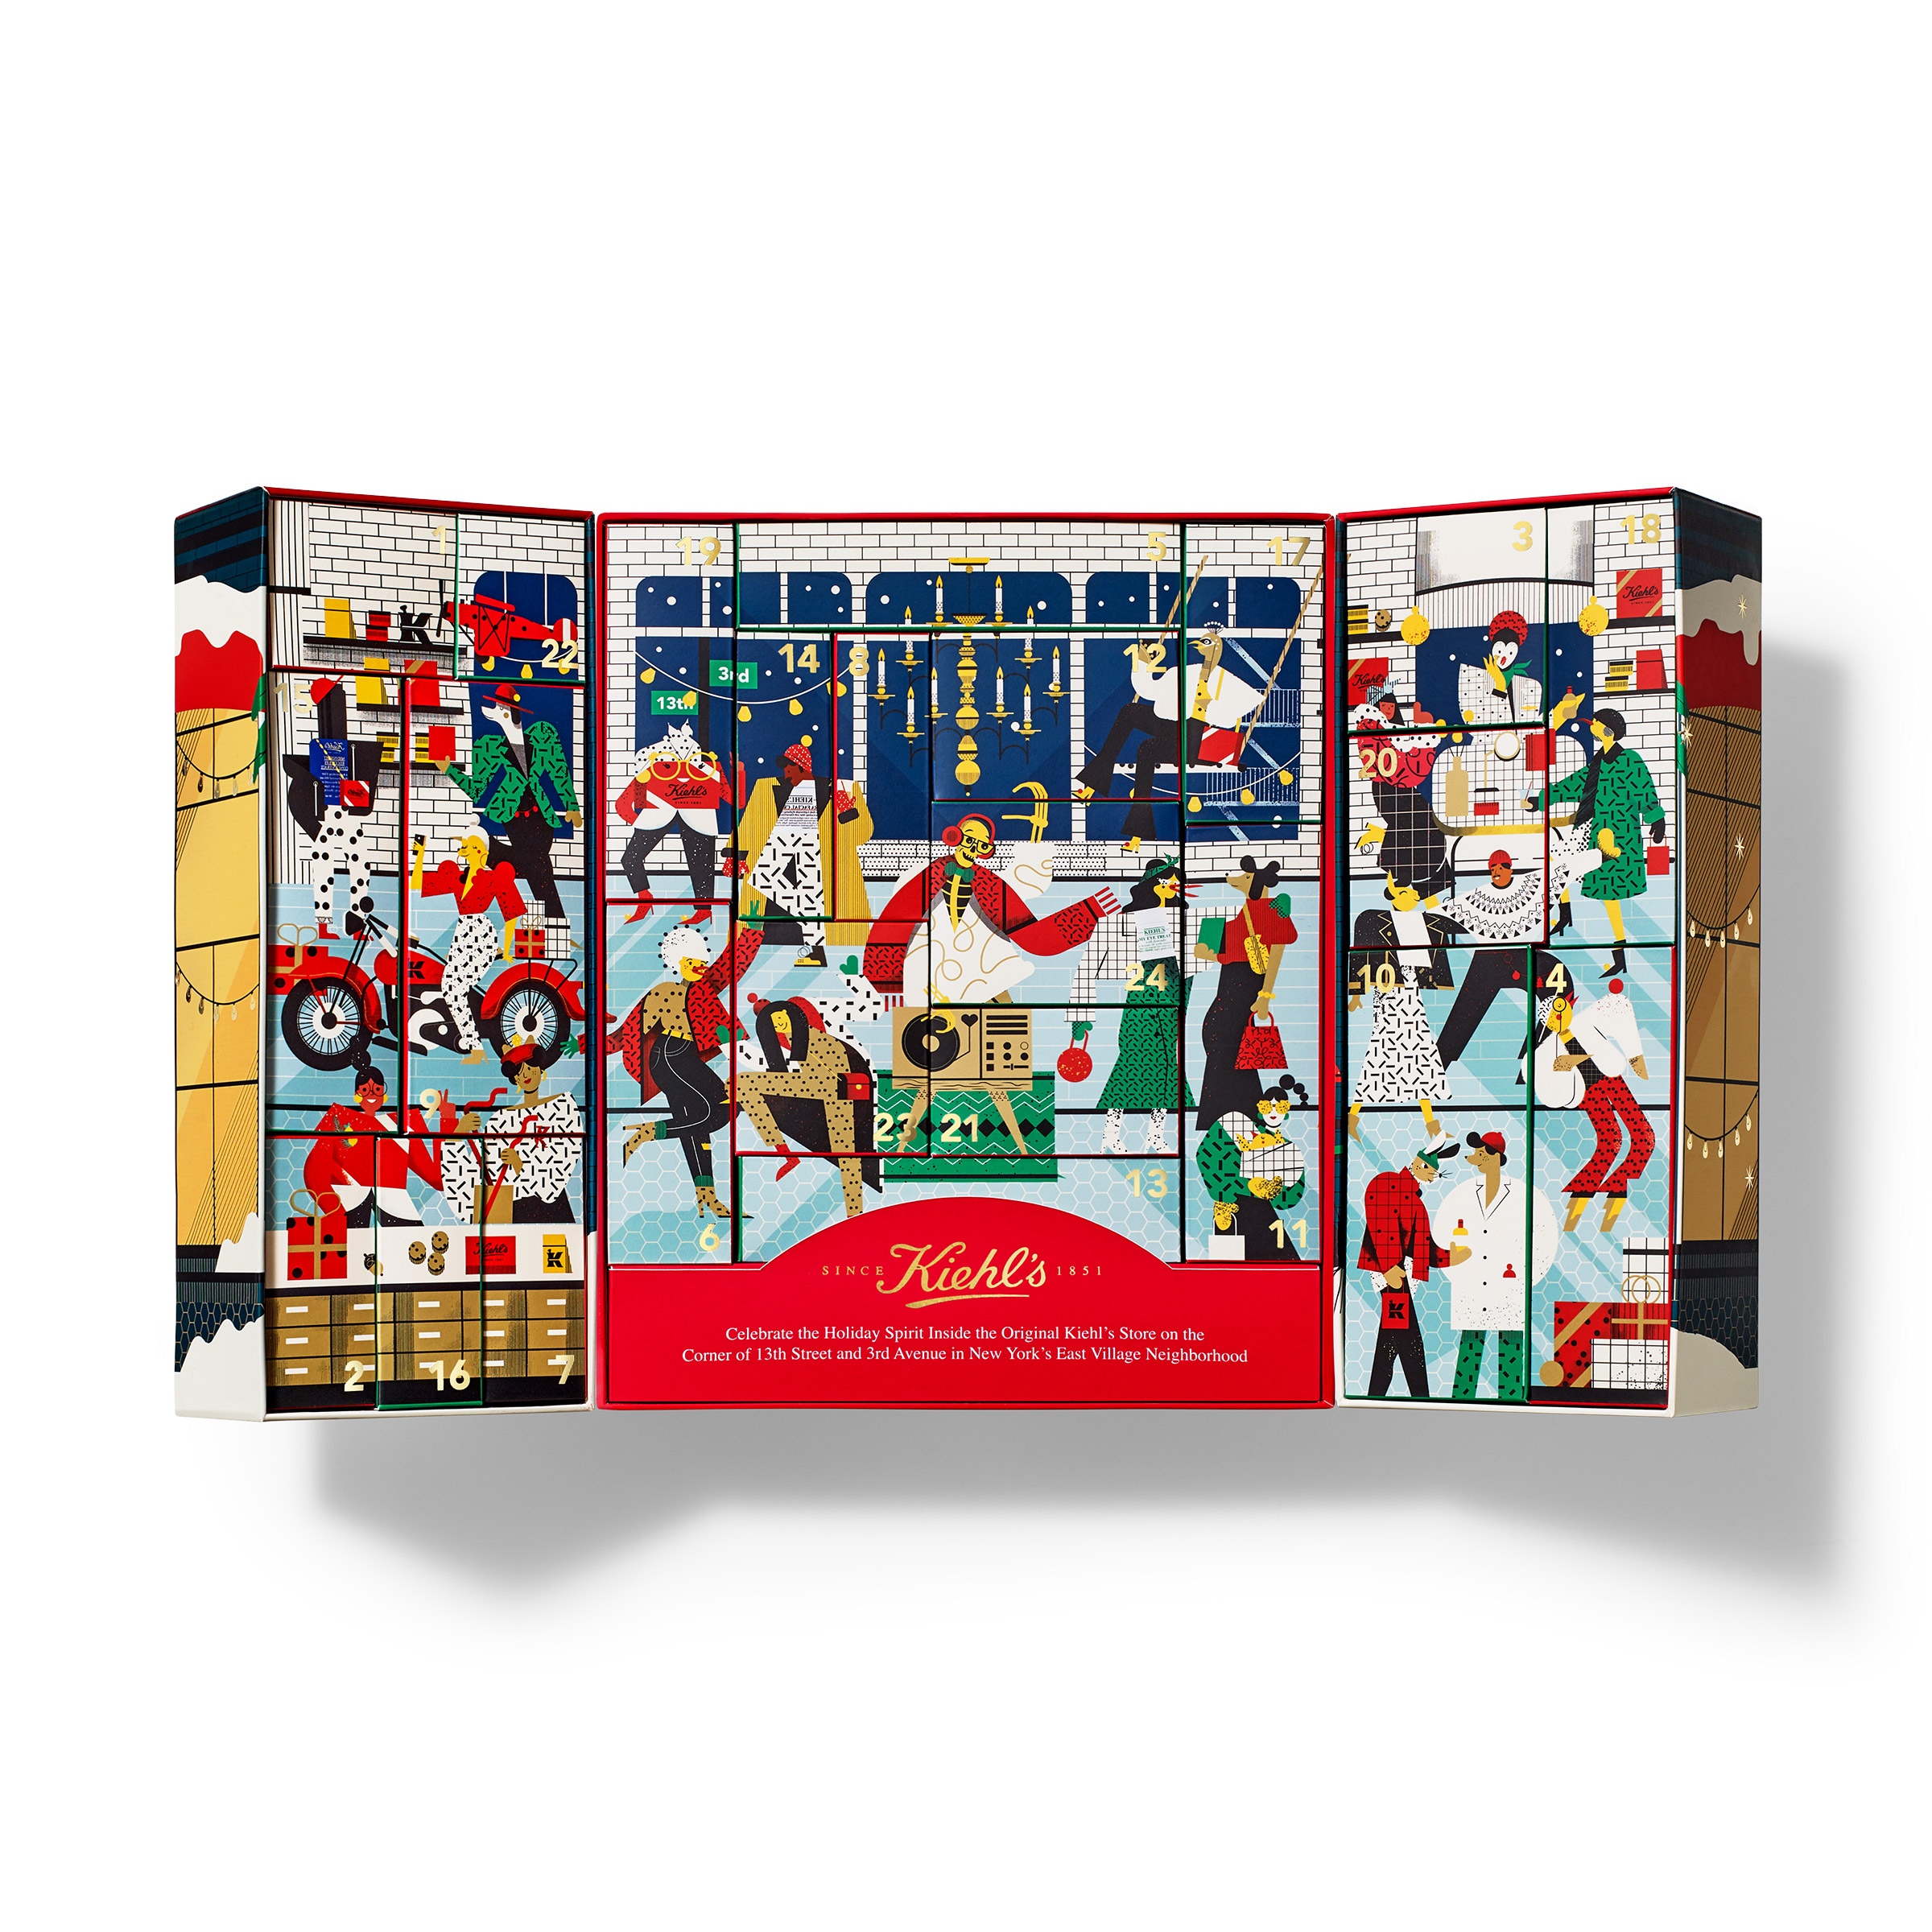 Kiehls Christmas 2020 Sets Limited Edition Skincare Advent Calendar   Kiehl's